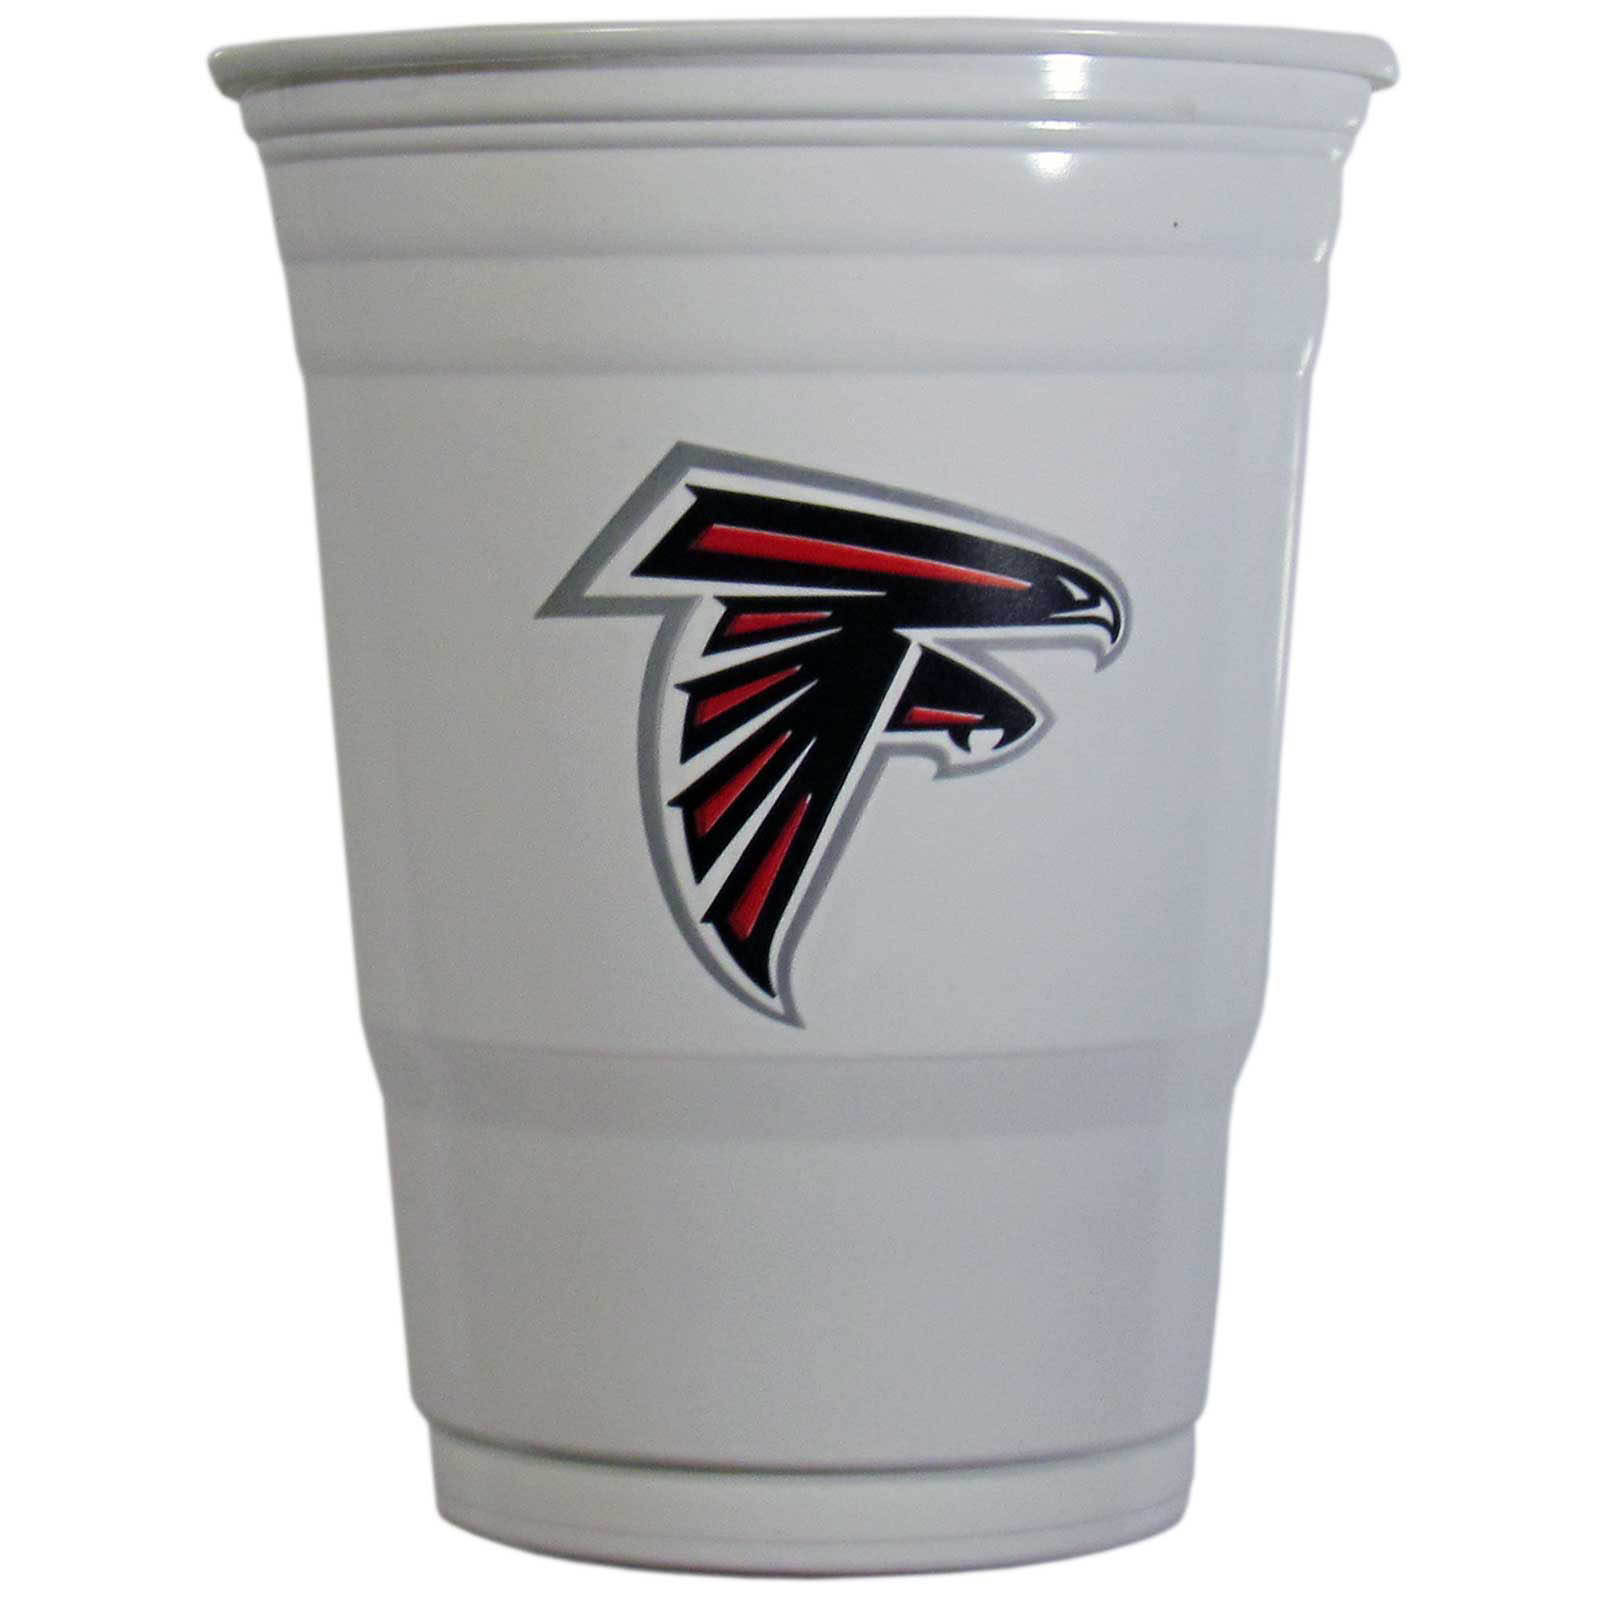 Atlanta Falcons Plastic Game Day Cups 2 sleeves of 18 (36 Cups) - Our 18 ounce game day cups are what every tailgating or backyard events needs! The cups feature a big Atlanta Falcons logo so you can show off your team pride. The popular 18 ounce size is perfect for drinks or ping pong balls! 2 sleeves of 18 cups, 36 cups in total.